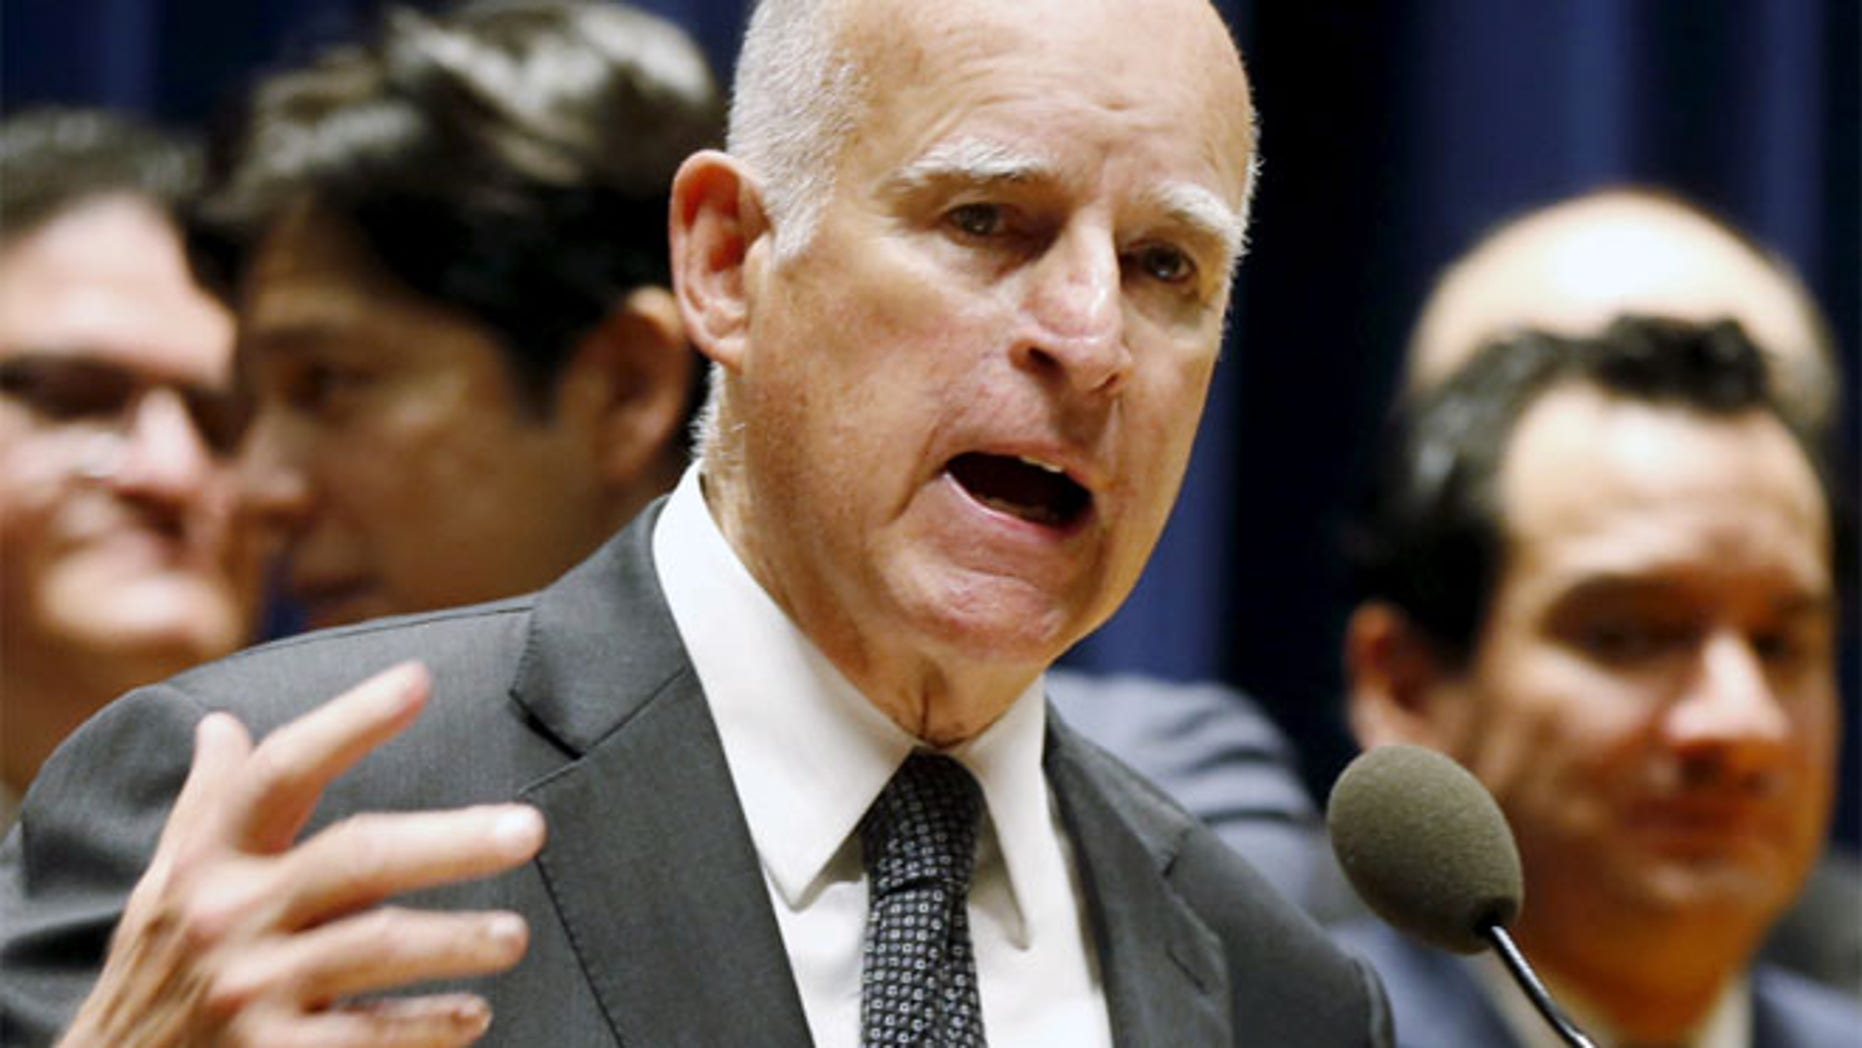 Gov. Jerry Brown's administration miscalculated costs for the state Medi-Cal program by $1.9 billion last year